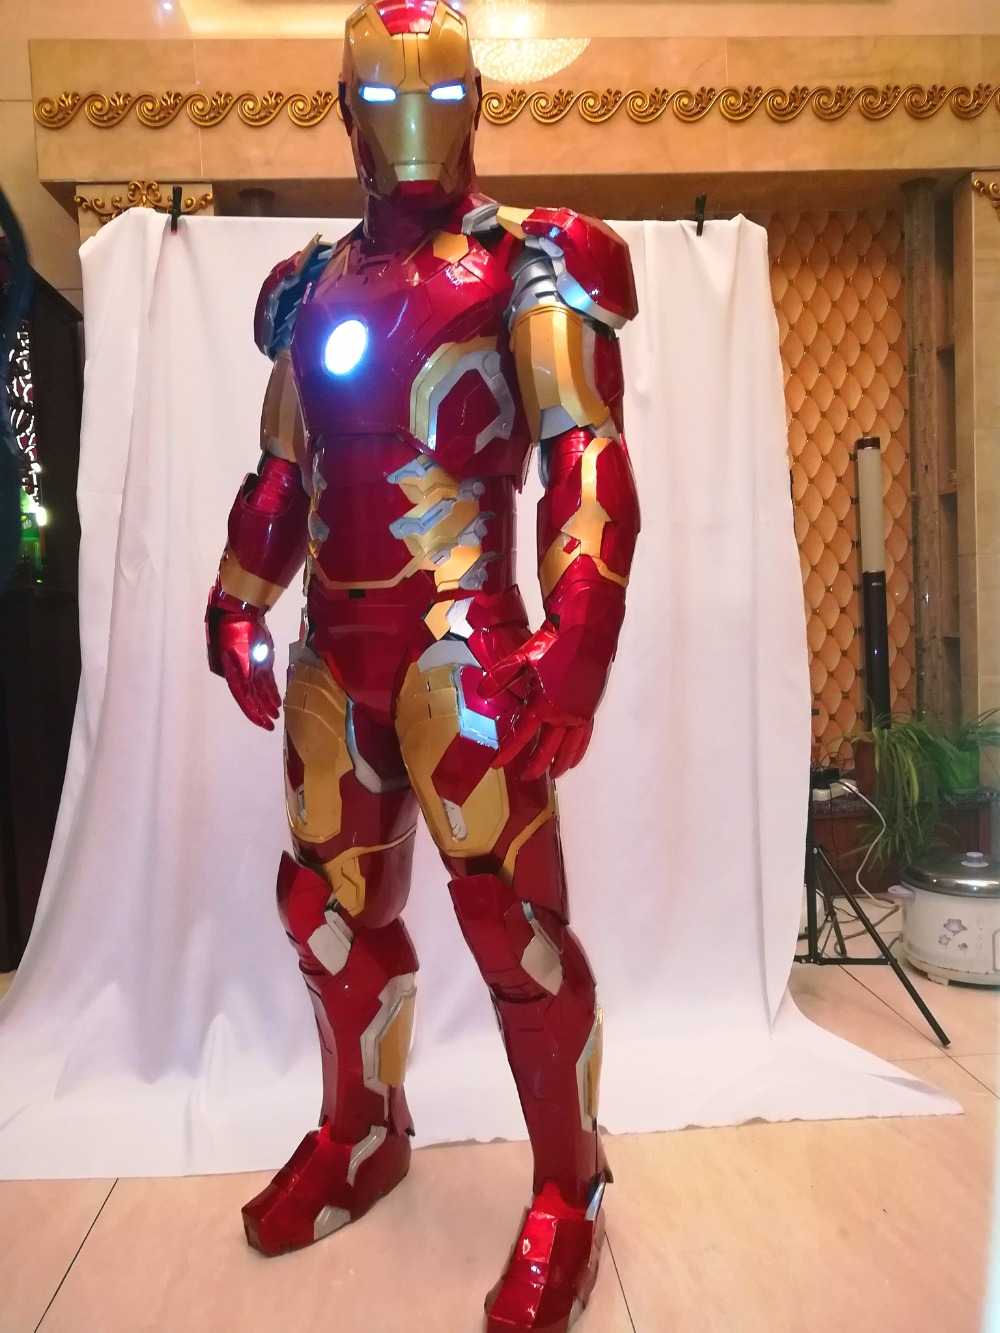 Iron Man Suit Iron Man Cosplay Costume  Wearable Made to Measure and Movie Accurate.